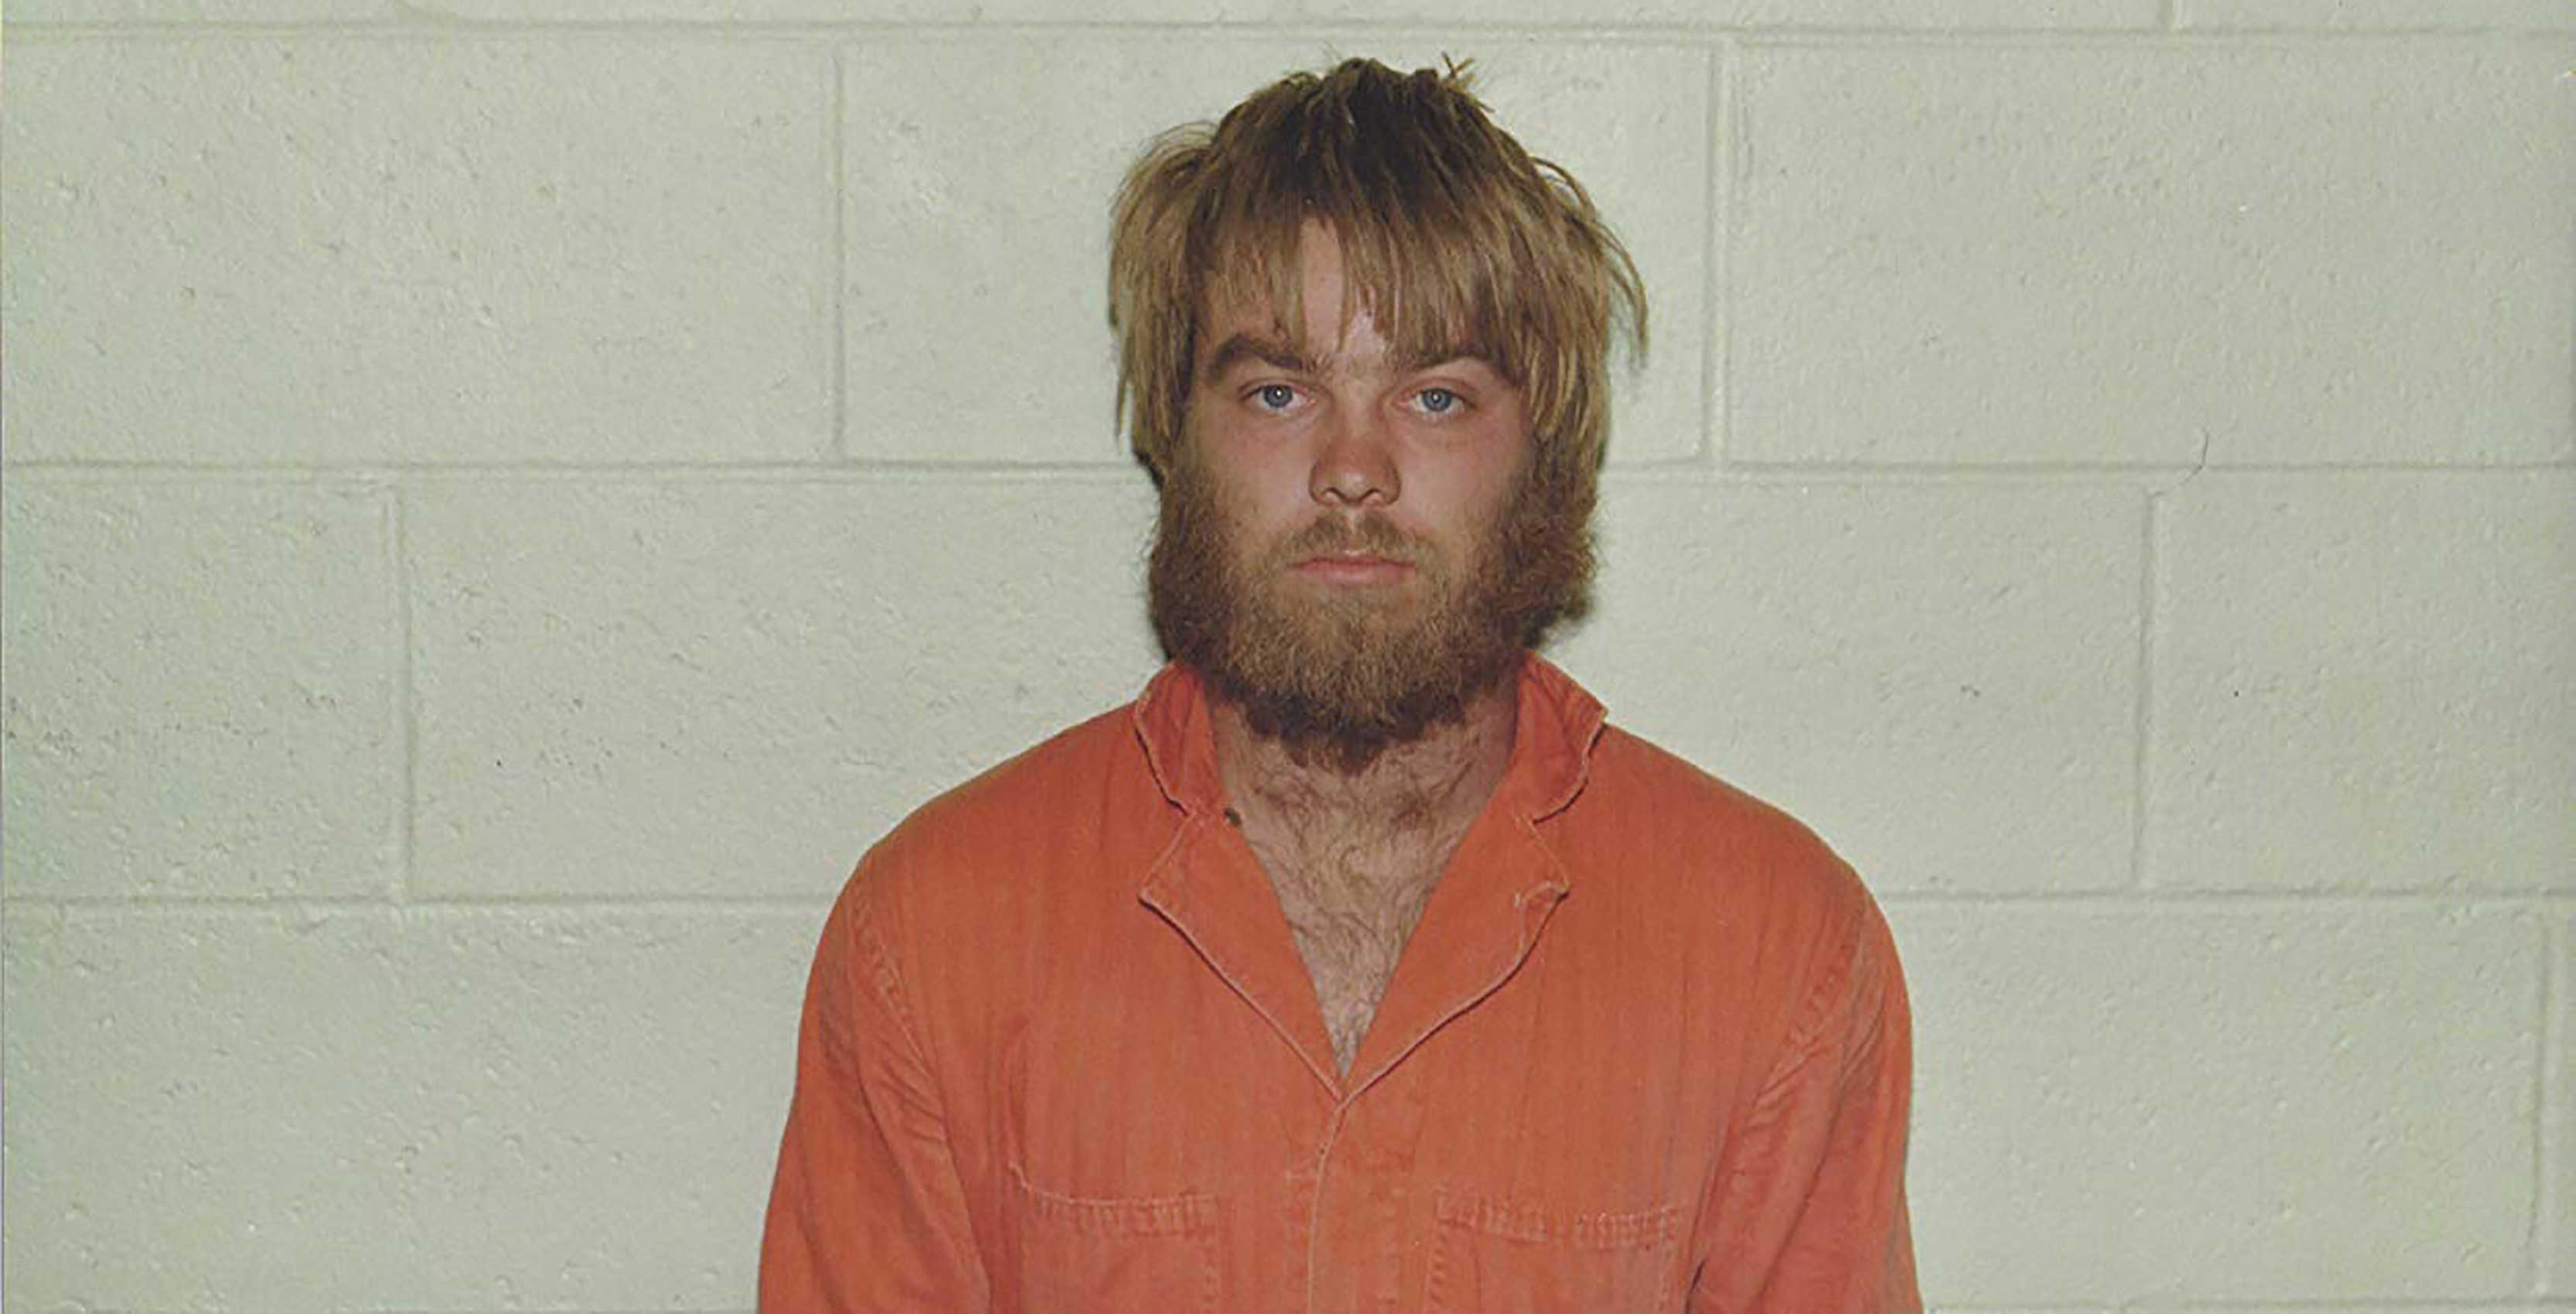 Steven Avery in Making a Murderer